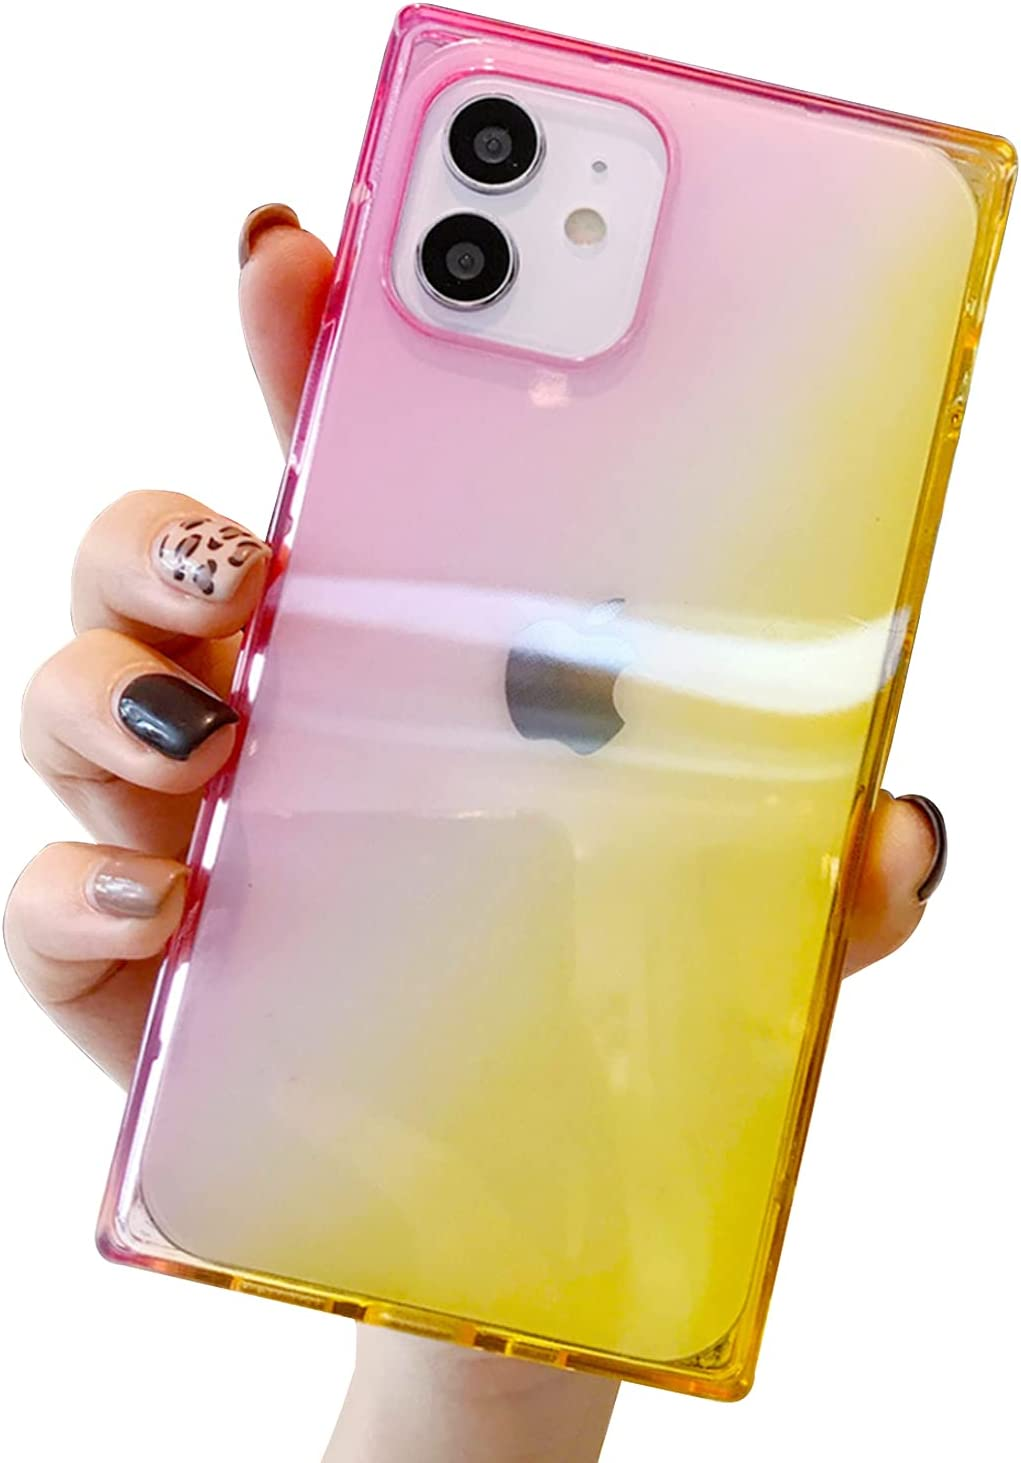 iPhone 12 Pro Max Case 6.7 inch 2020 Clear Square Case Reinforced Corners TPU Cushion Gradient Cover Compatible with iPhone 12 Pro Max (Pink-Yellow)